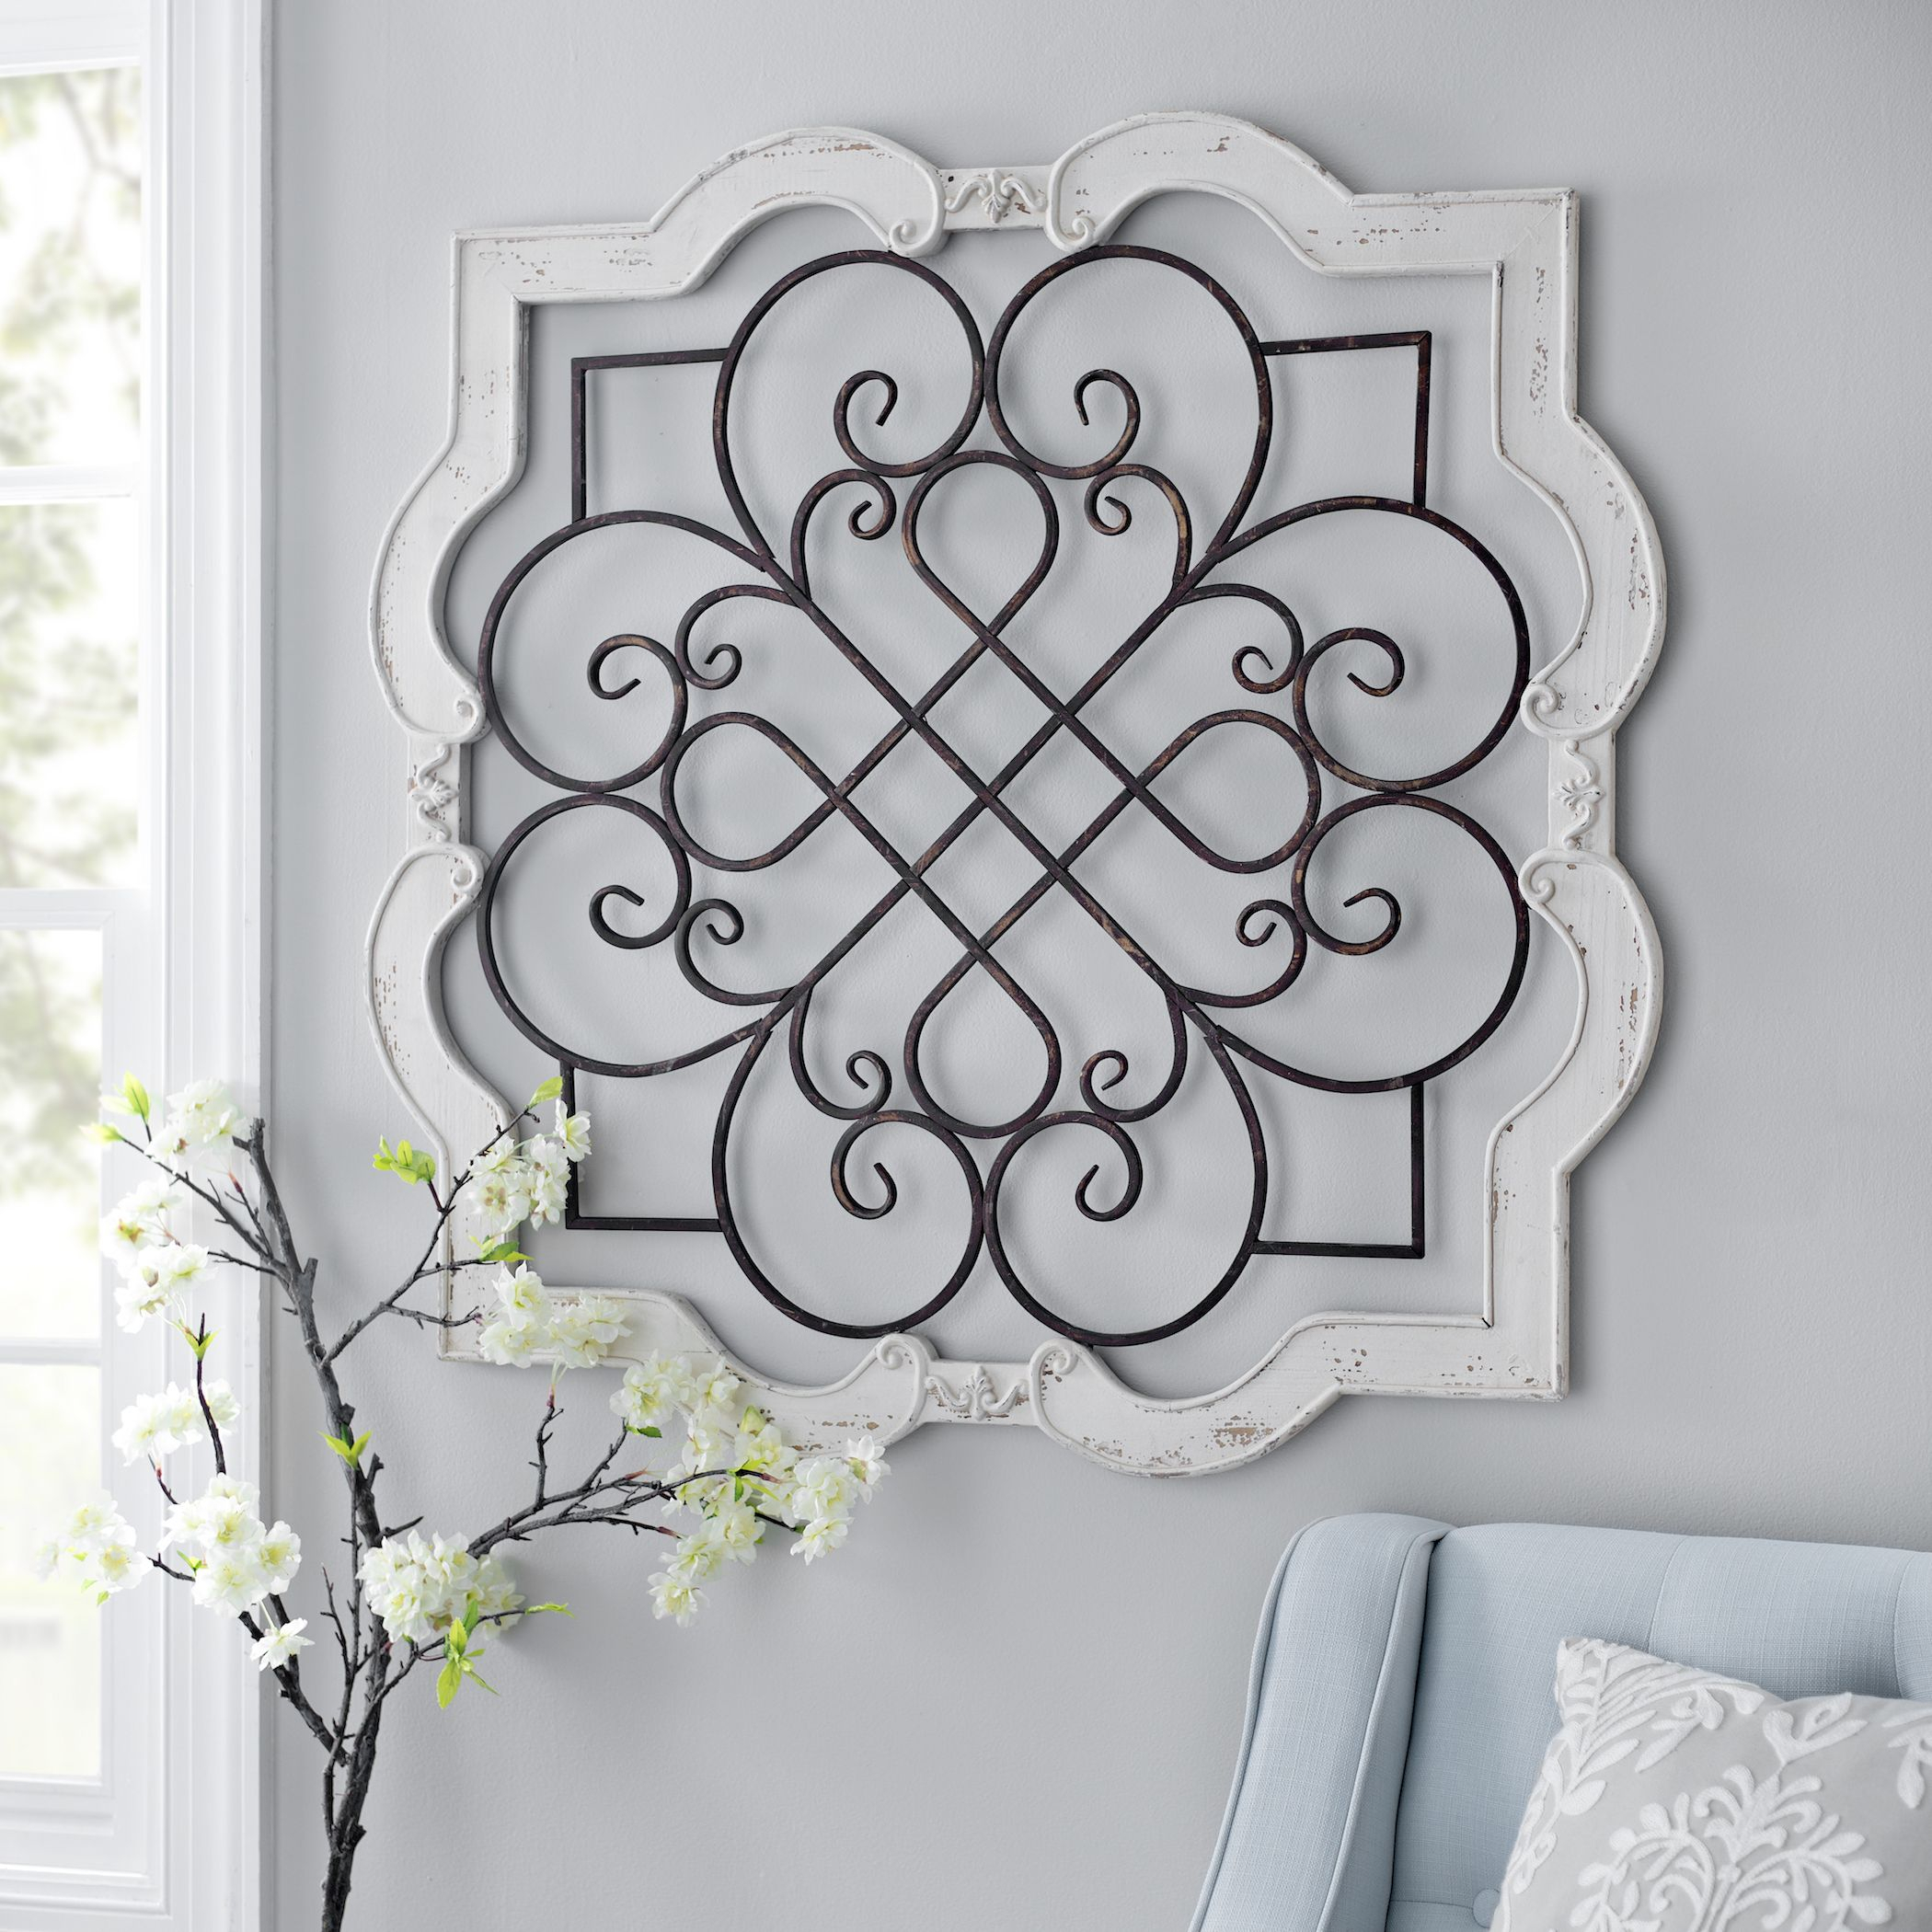 1 Piece Ortie Panel Wall Decor With Fashionable Shabby Chic Farmhouse Cream Wood Iron Scroll Wall Door Sculpture (View 1 of 20)